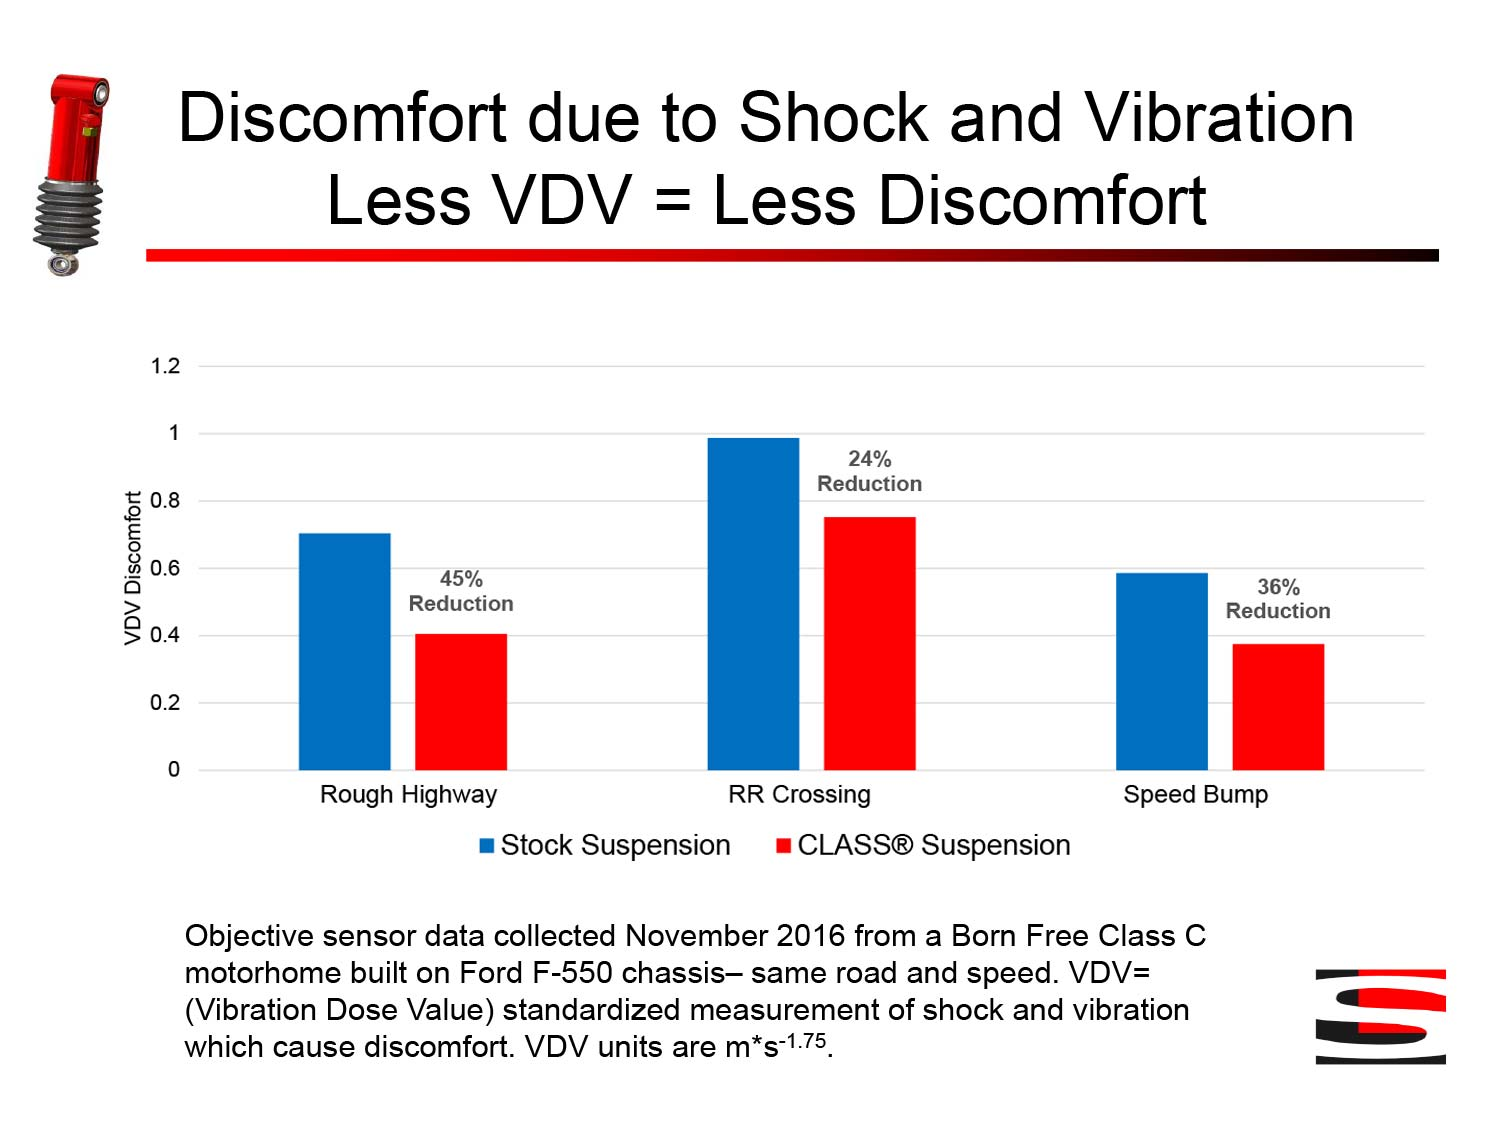 Discomfort due to Shock and VibrationLess VDV = Less Discomfort